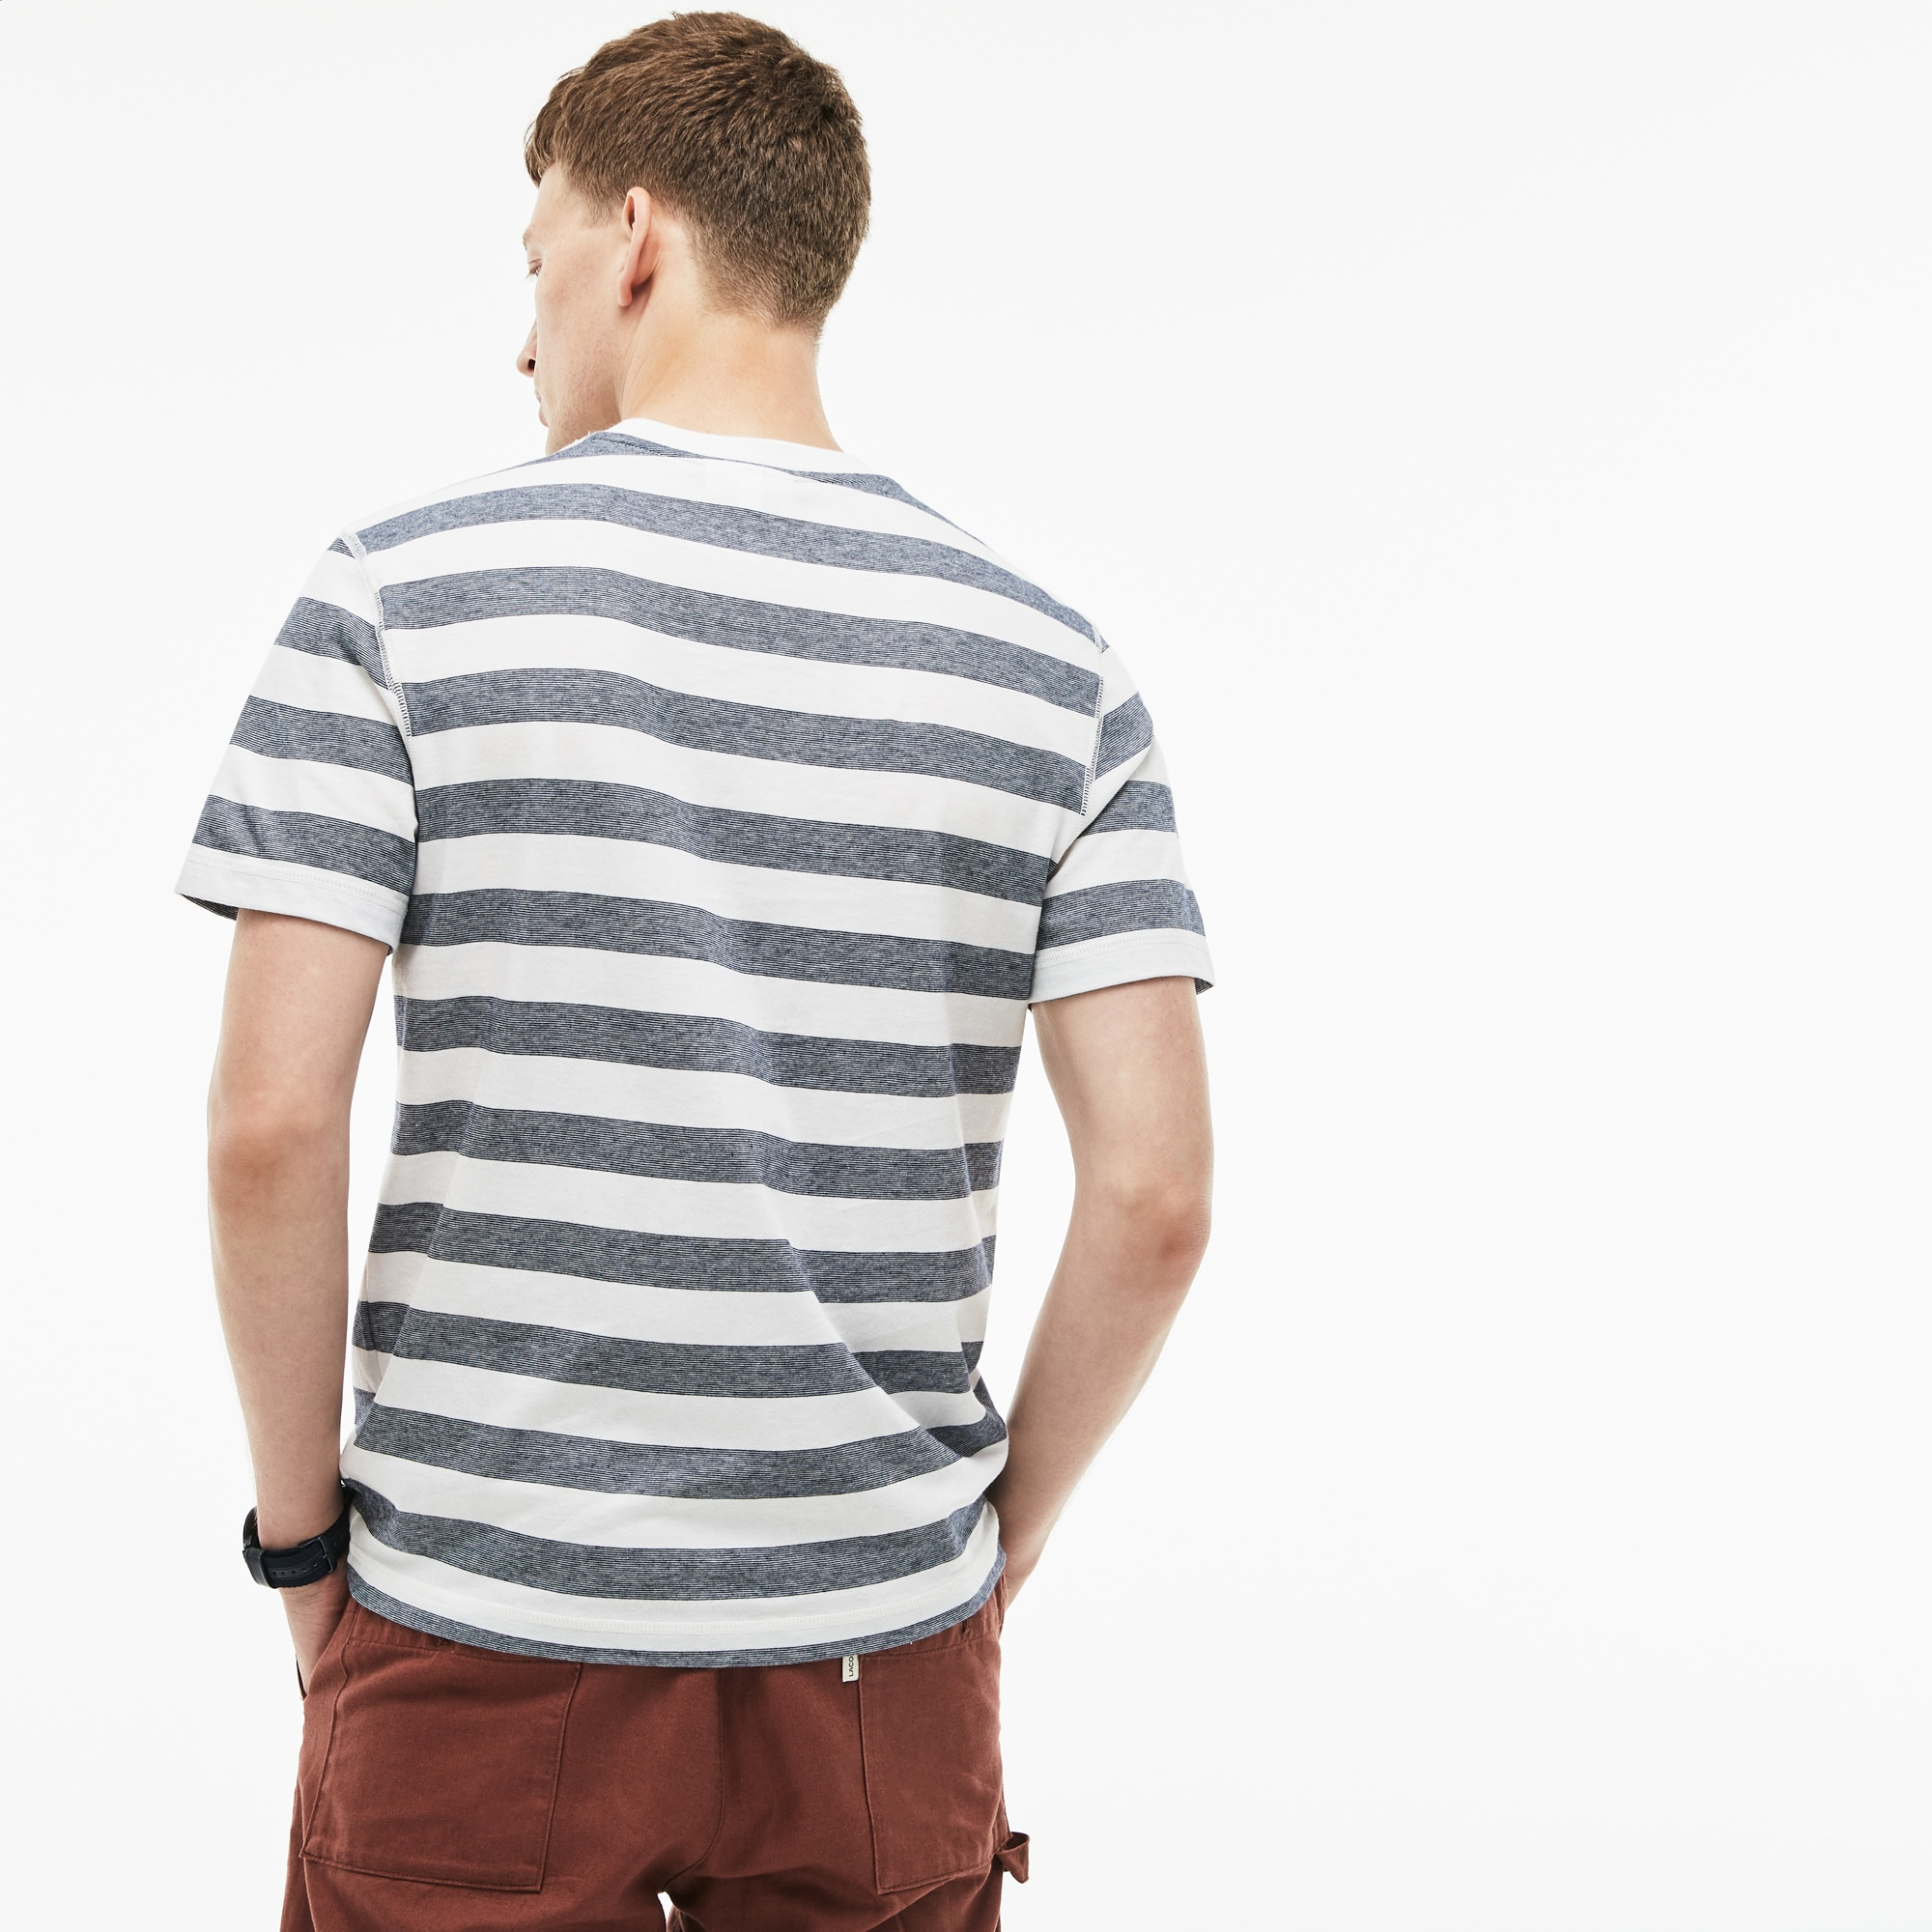 Men's Crew Neck Striped Cotton T-Shirt